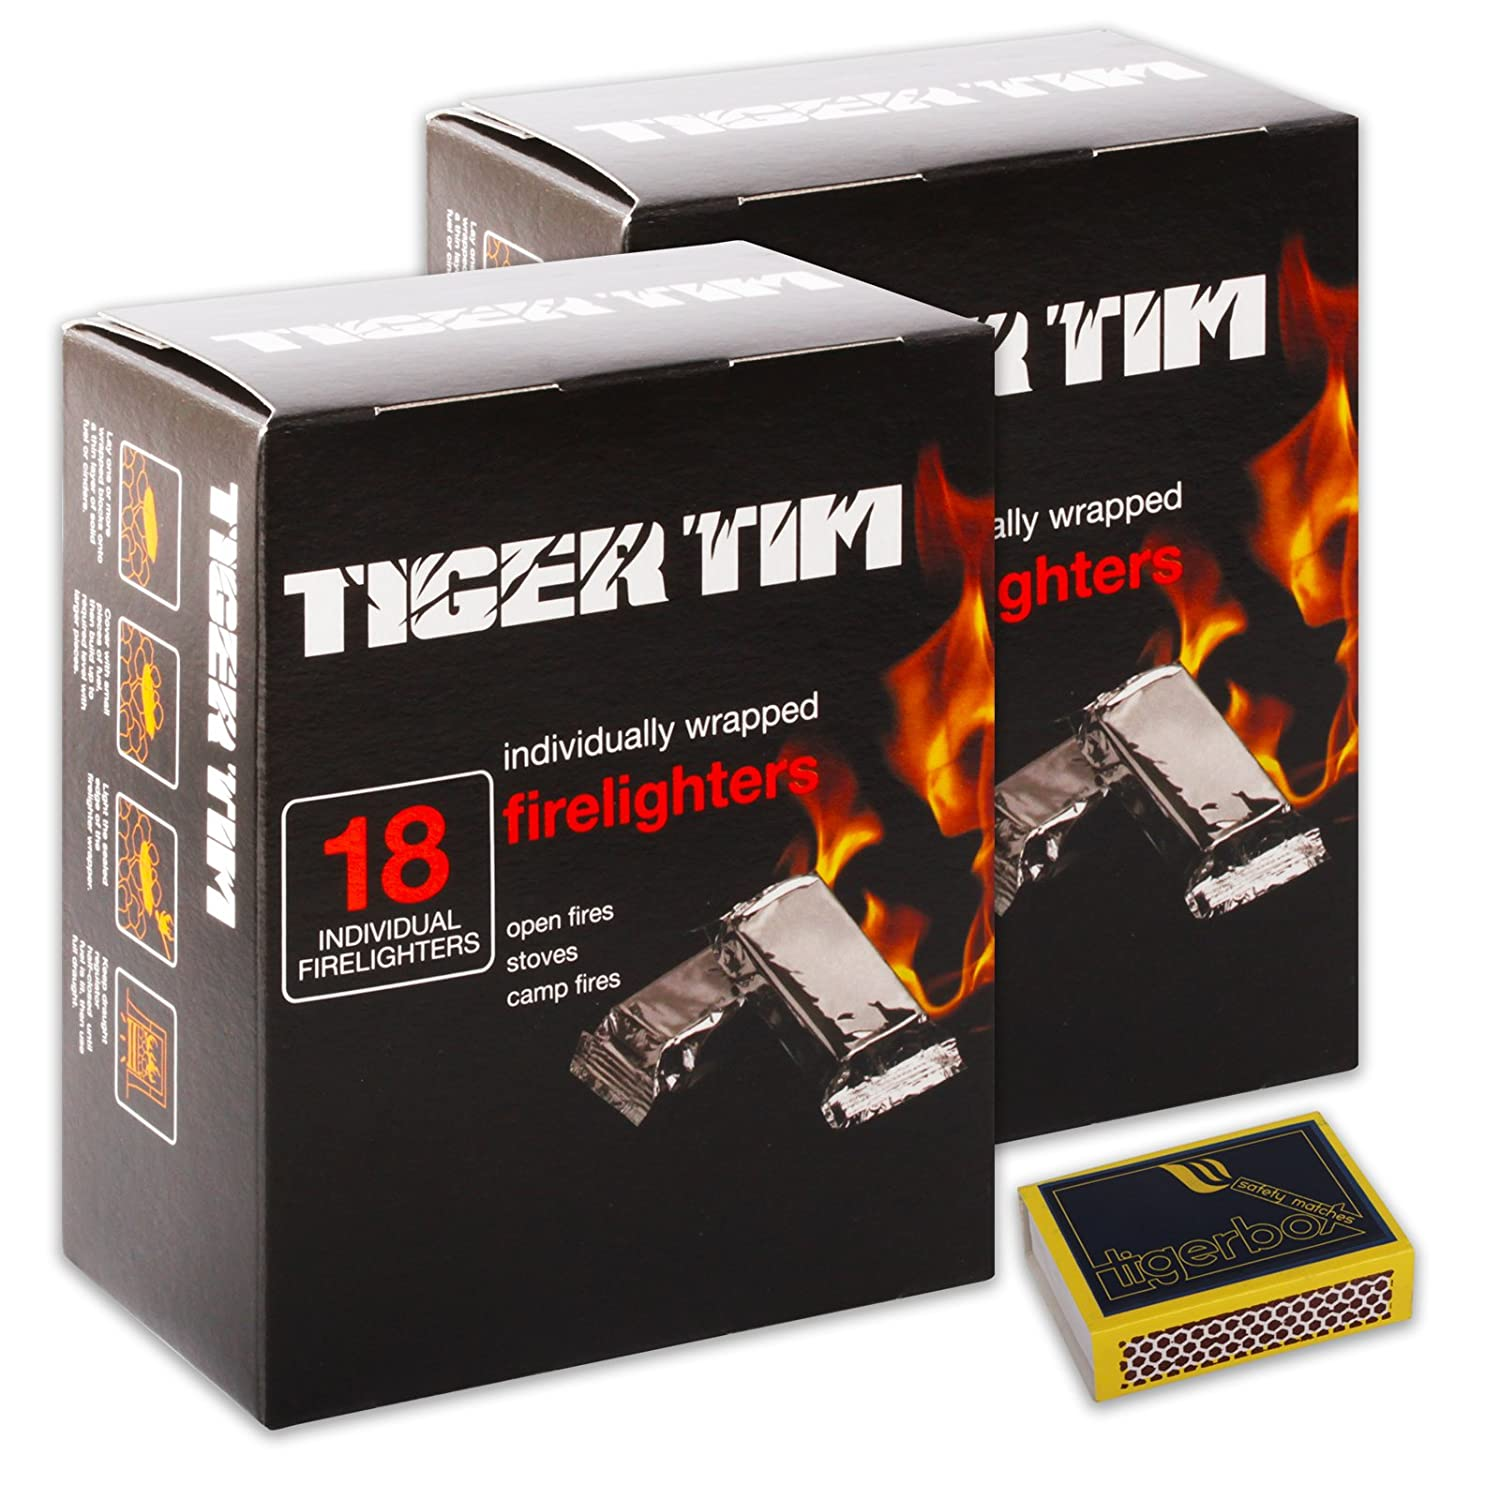 1 X Pack of FAST ODOURLESS NO MESS Individually Wrapped Tiger Tim Firelighters & Tigerbox Safety Matches Tiger Tim / Tigerbox